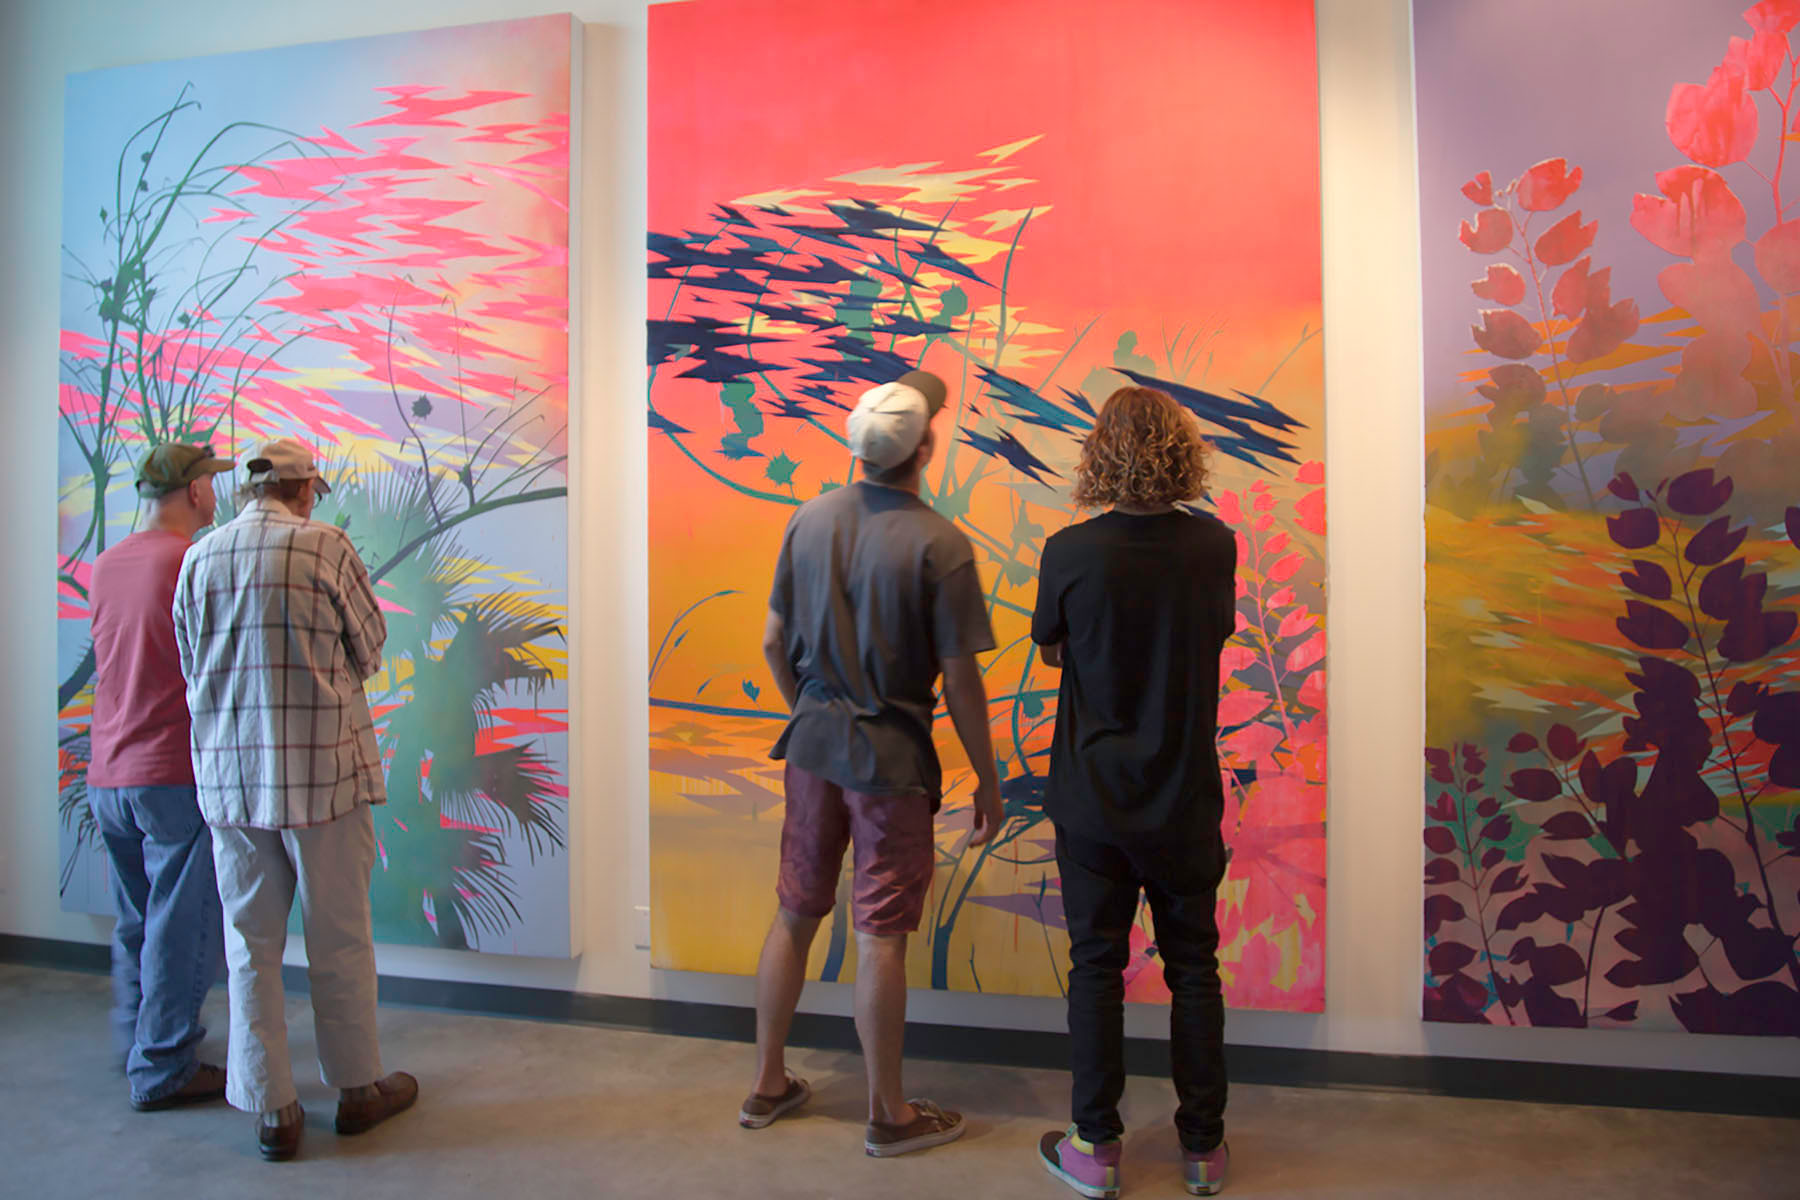 Art goers admire the work of Devon Tsuno on Friday, Sept. 16, at the Atkinson Gallery. Tsuno's gallery consists of abstract landscape paintings that focus on Los Angeles' bodies of water and native vs. non-native vegetation.